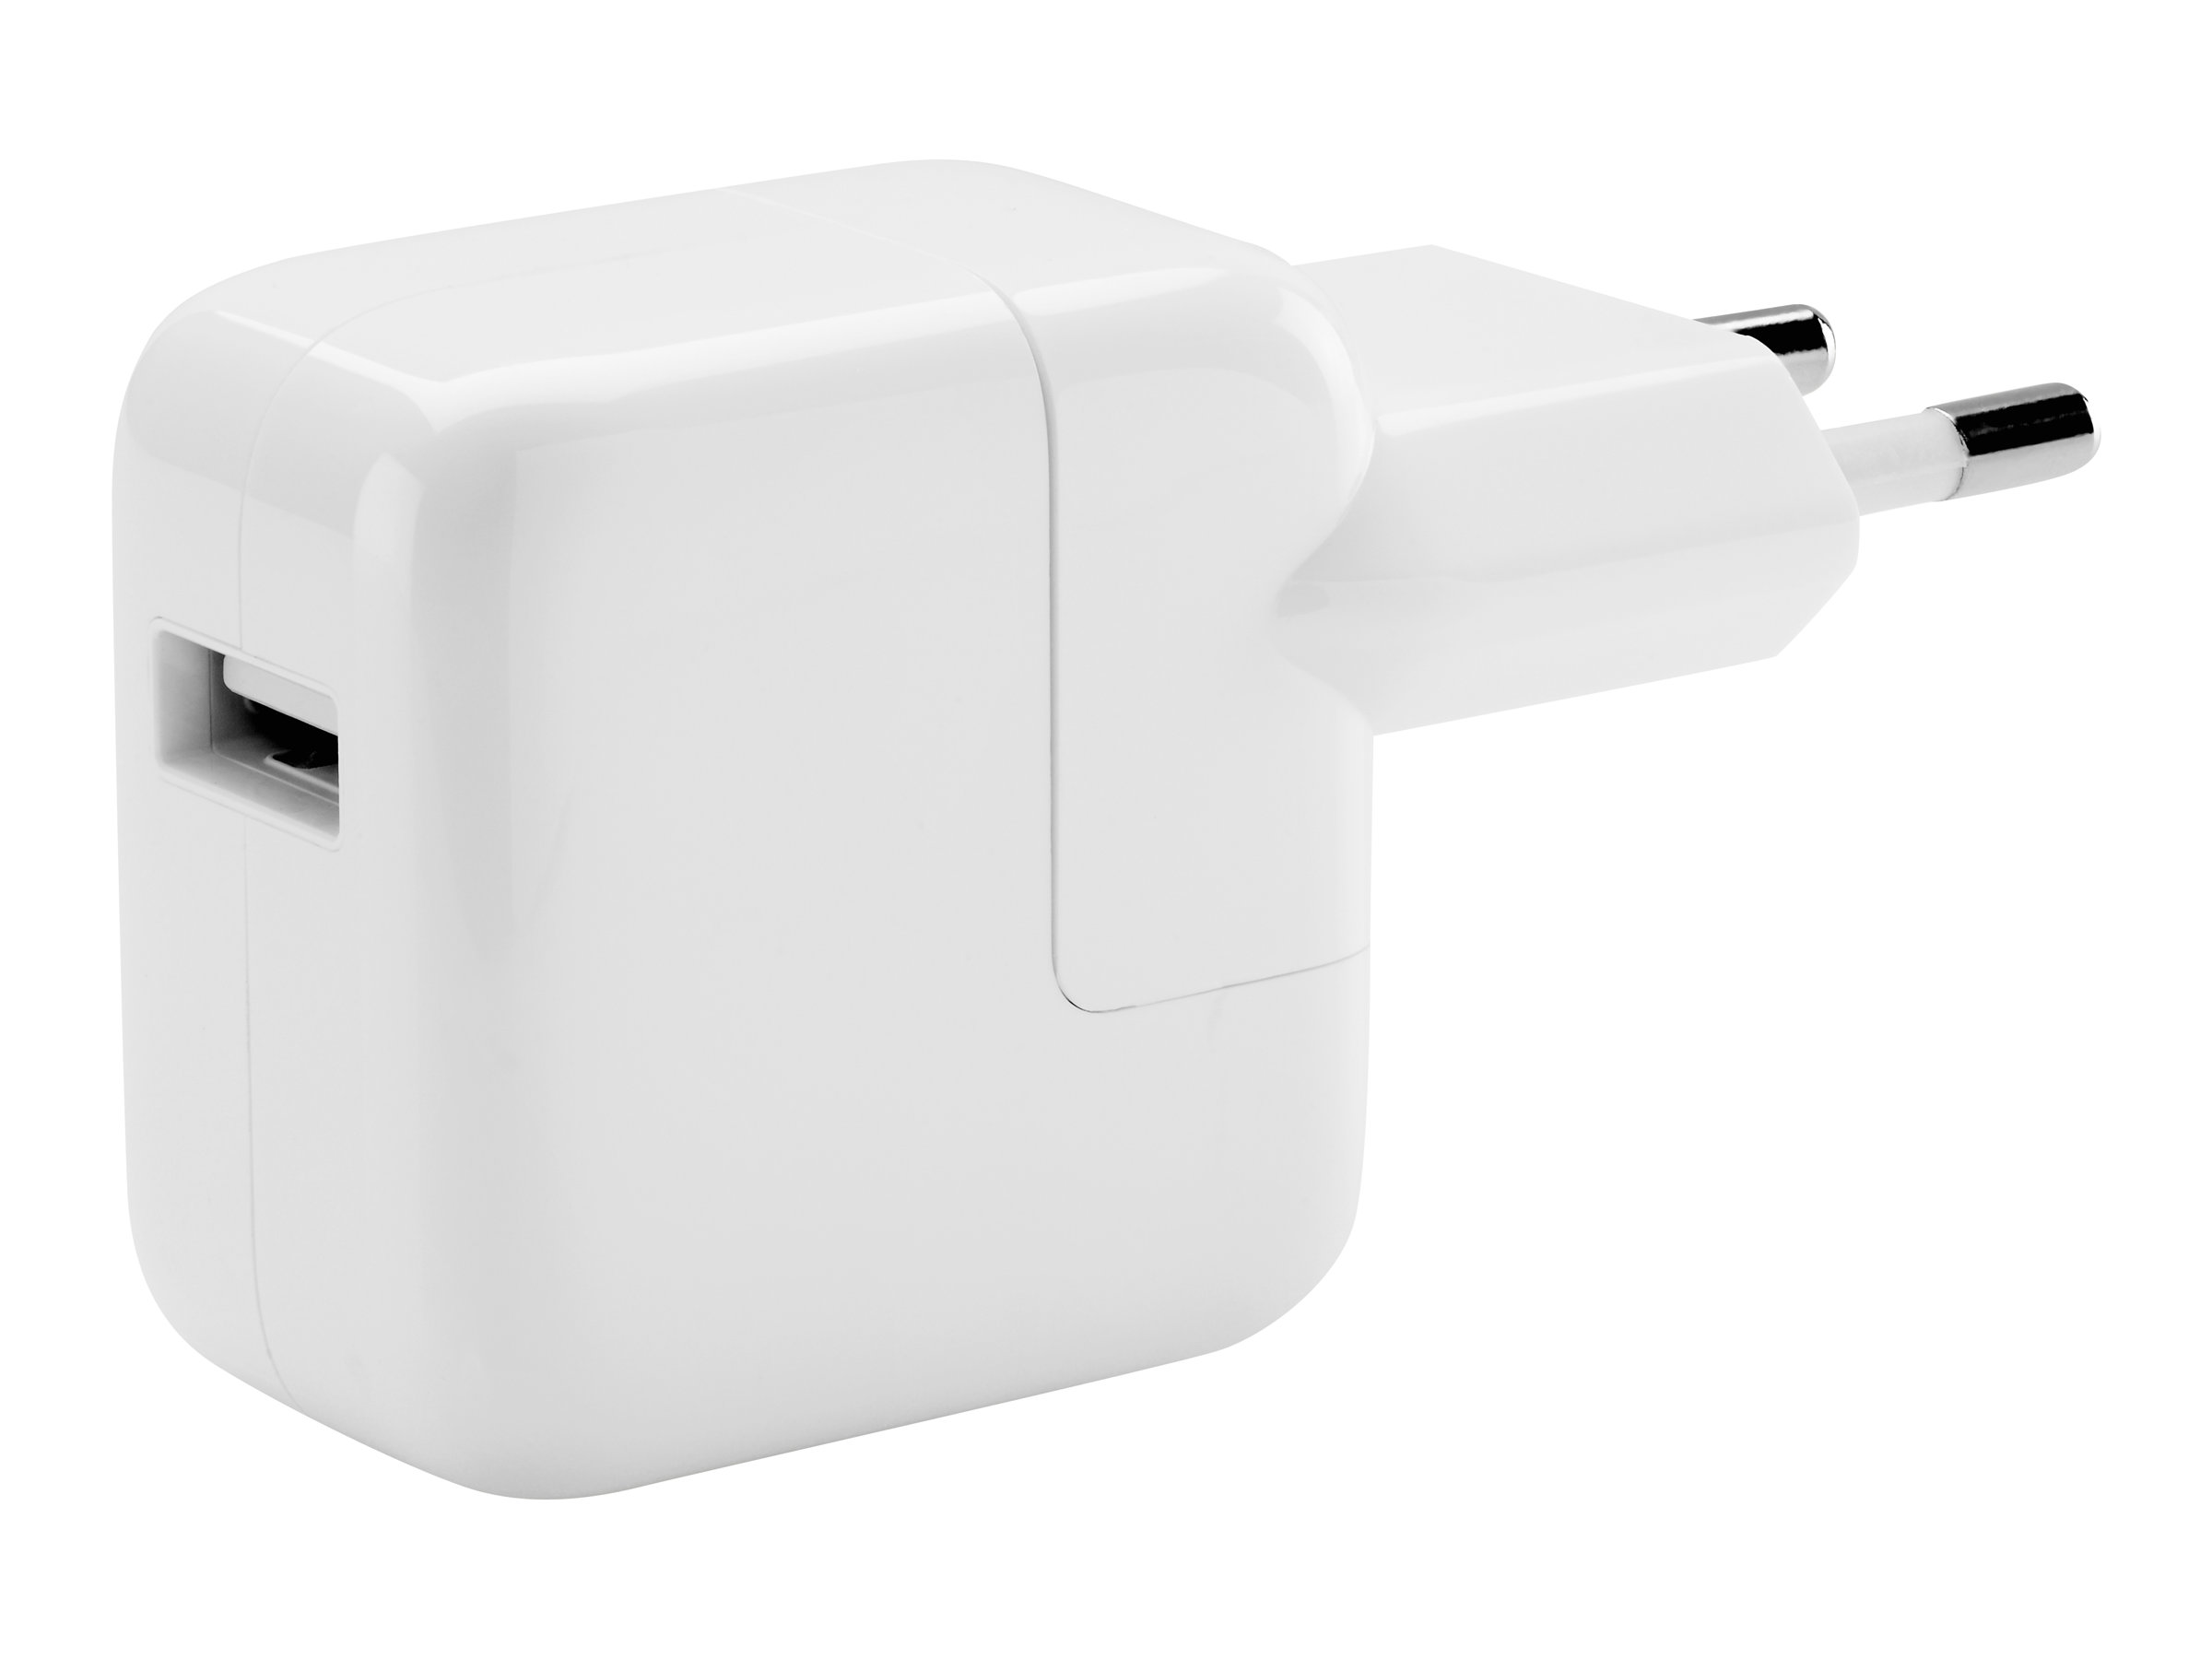 Apple 12W USB Power Adapter - Netzteil - 12 Watt - für 12.9-inch iPad Pro; 9.7-inch iPad; 9.7-inch iPad Pro; iPad mini 2; 4; iPhone 6s, SE